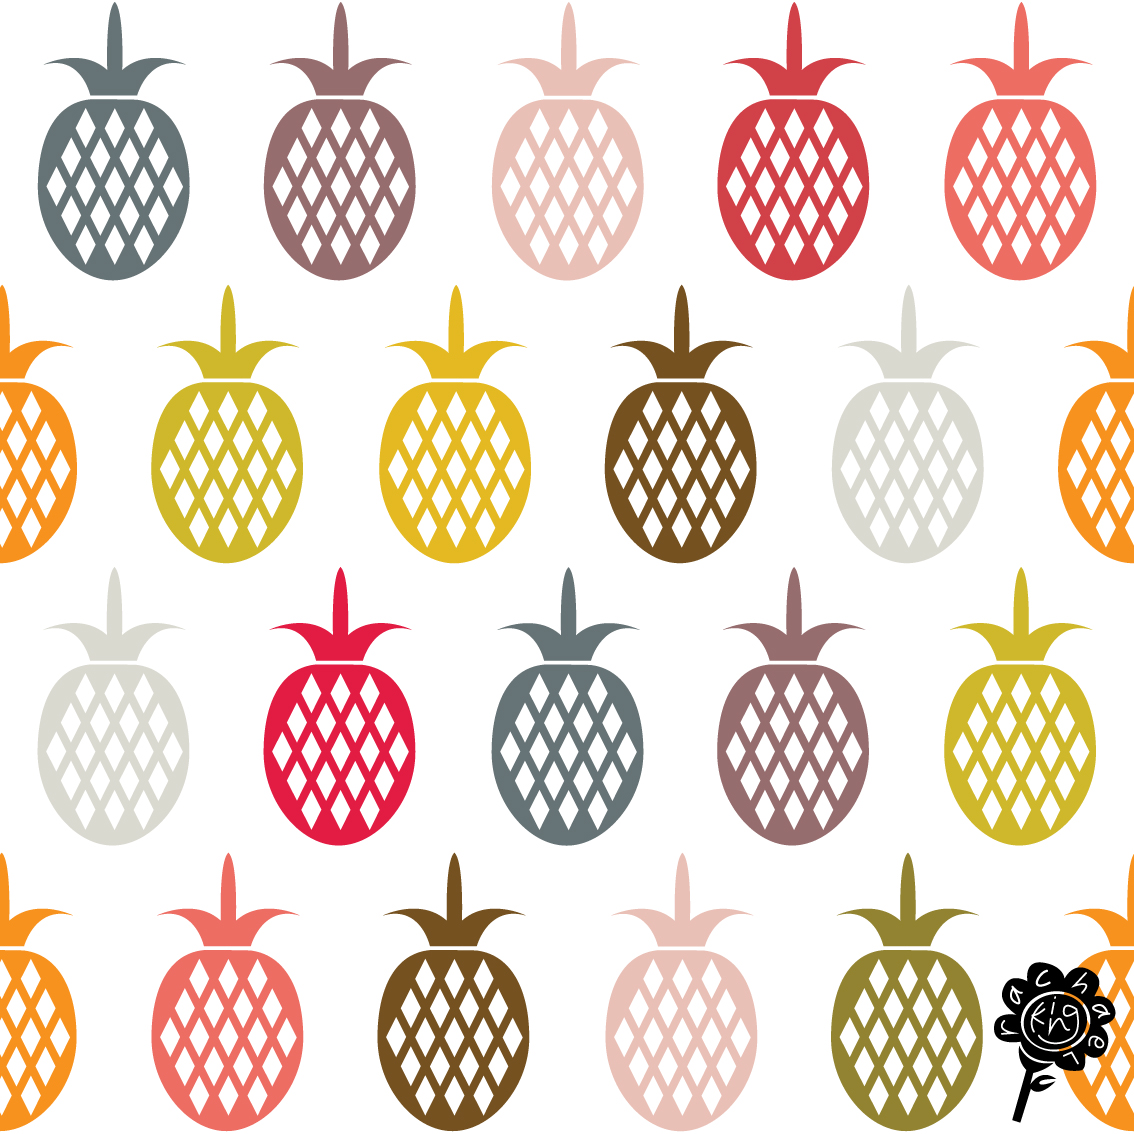 pineapple-play-inta